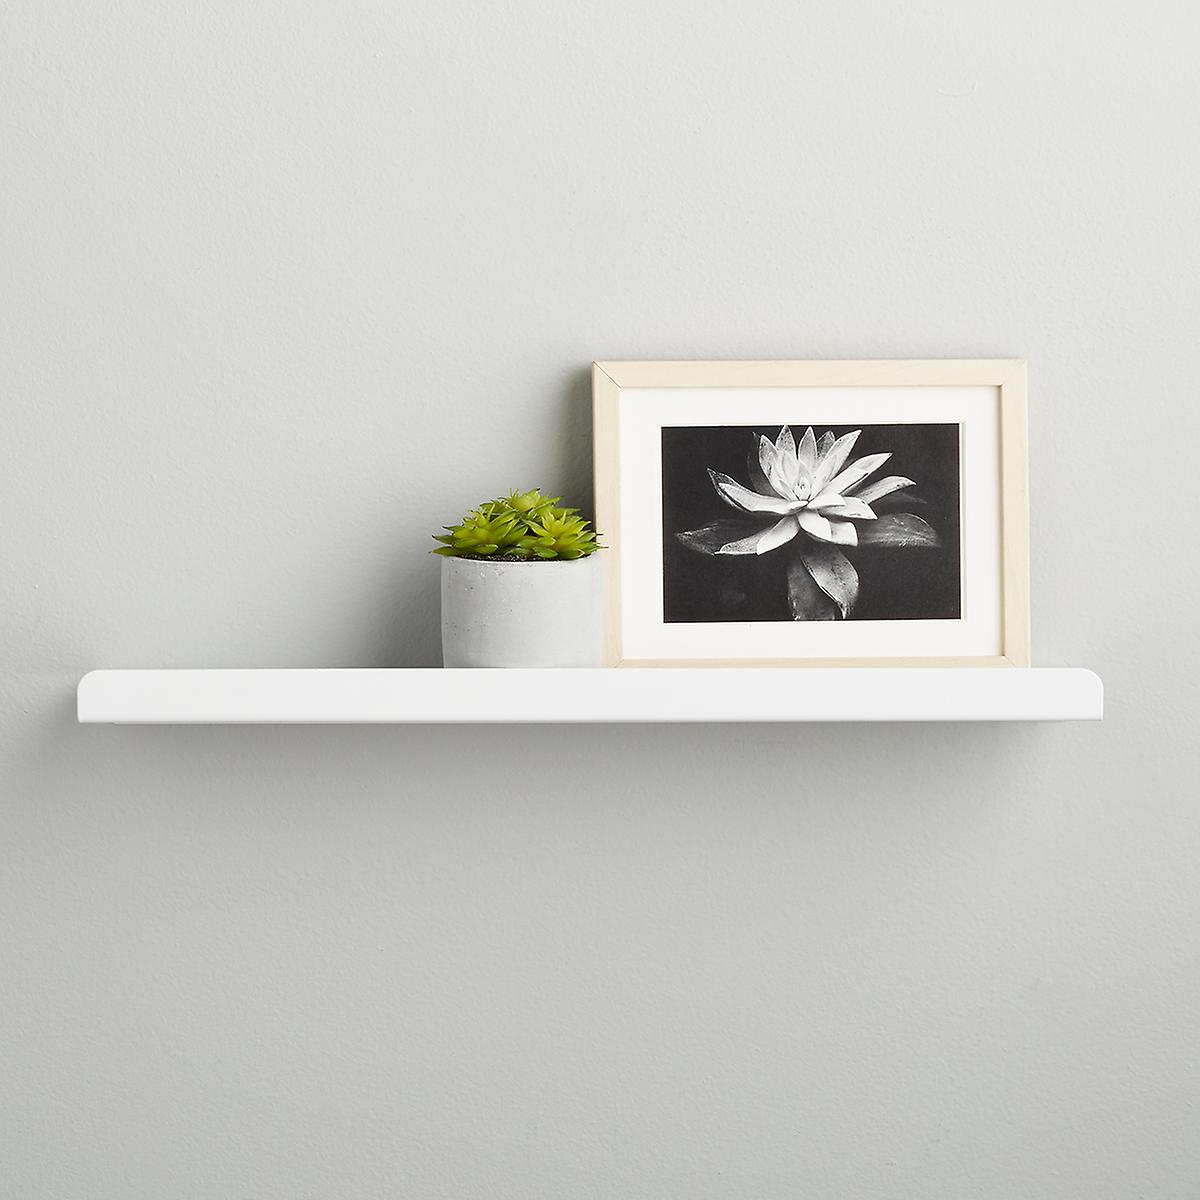 Umbra White Simple Ledge Wall Shelf